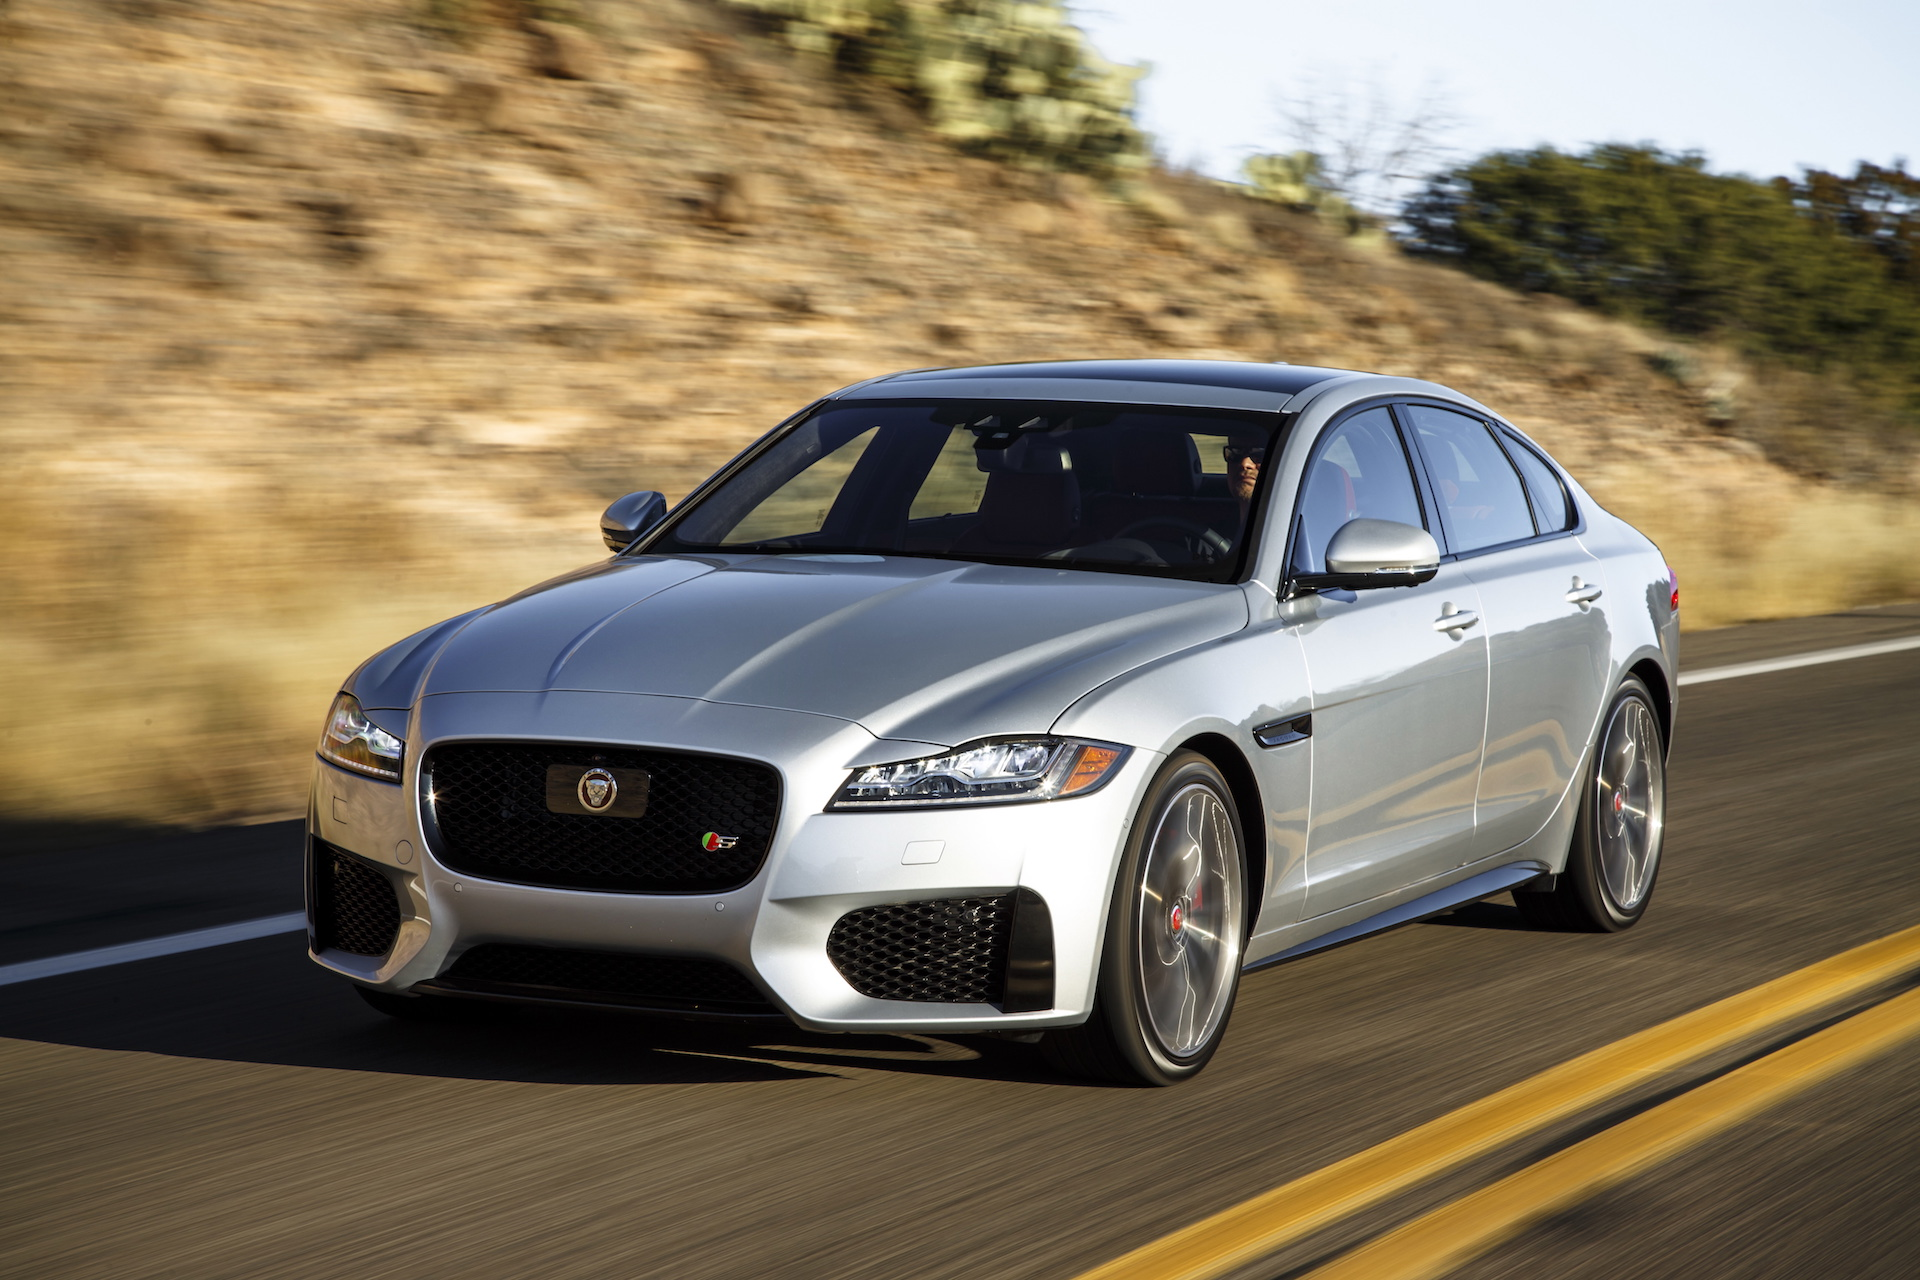 2017 Jaguar XF Review, Ratings, Specs, Prices, and Photos ...